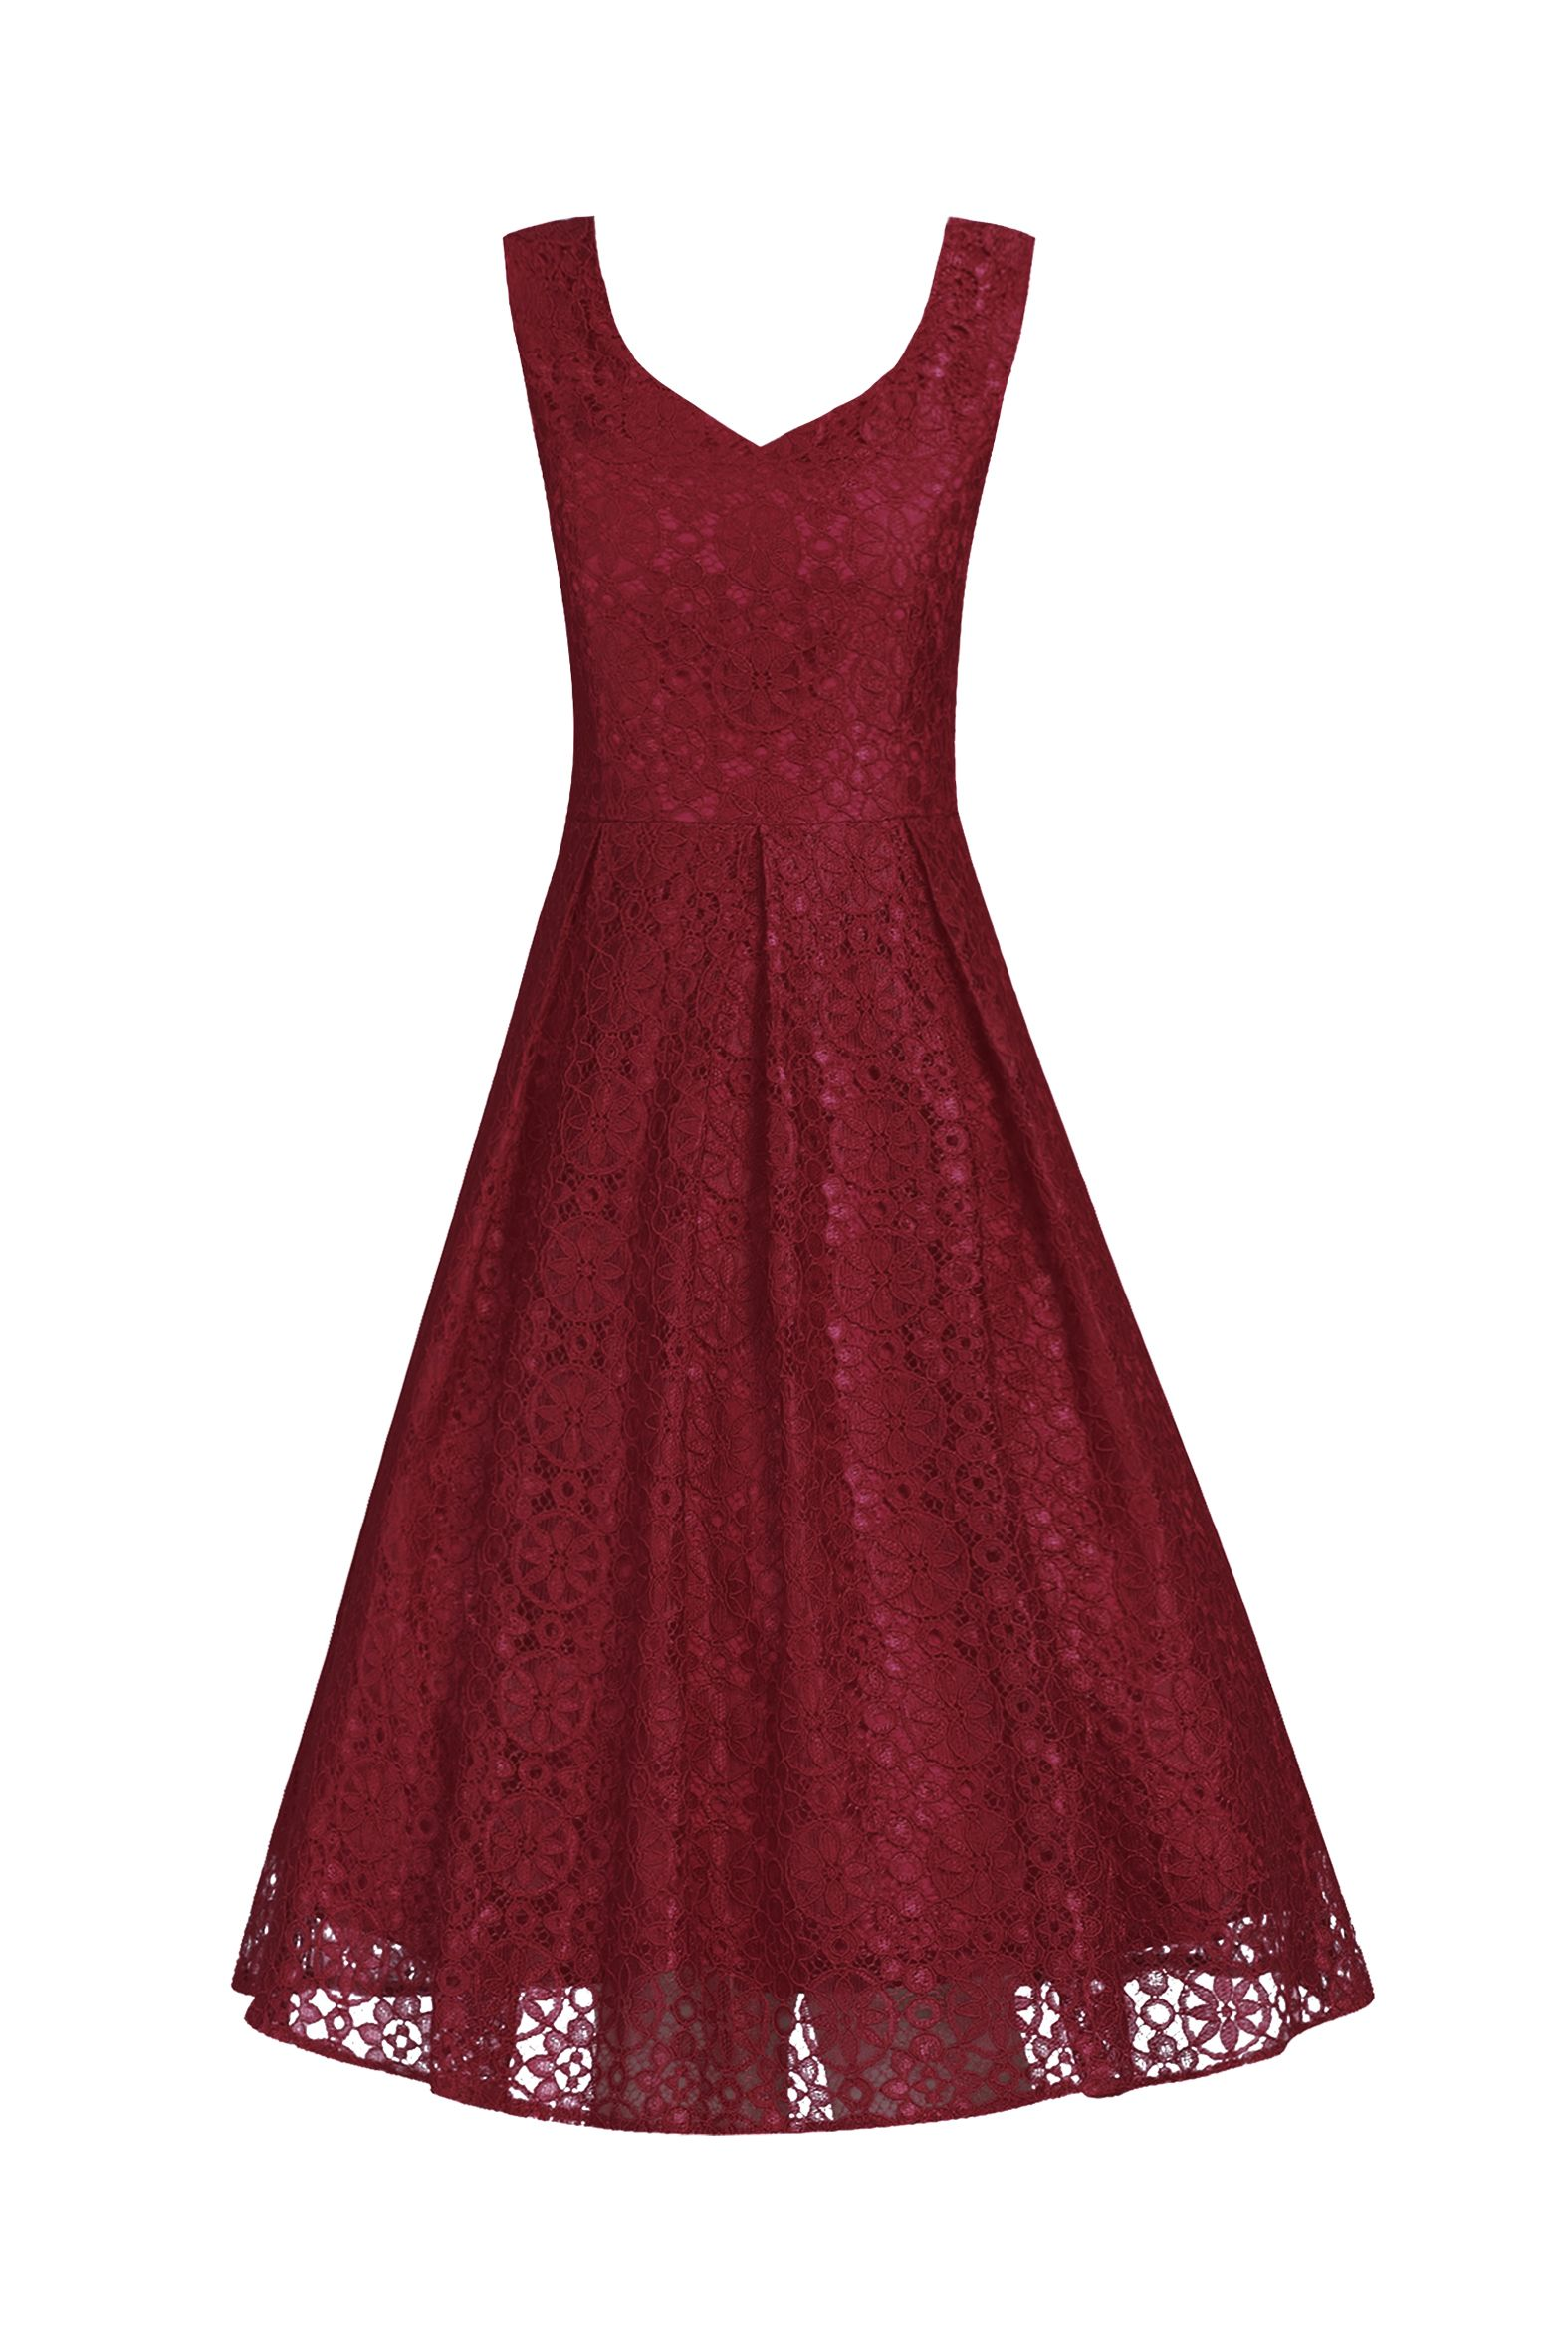 Jolie Moi Sweetheart Pleated Lace Dress, Dark Red